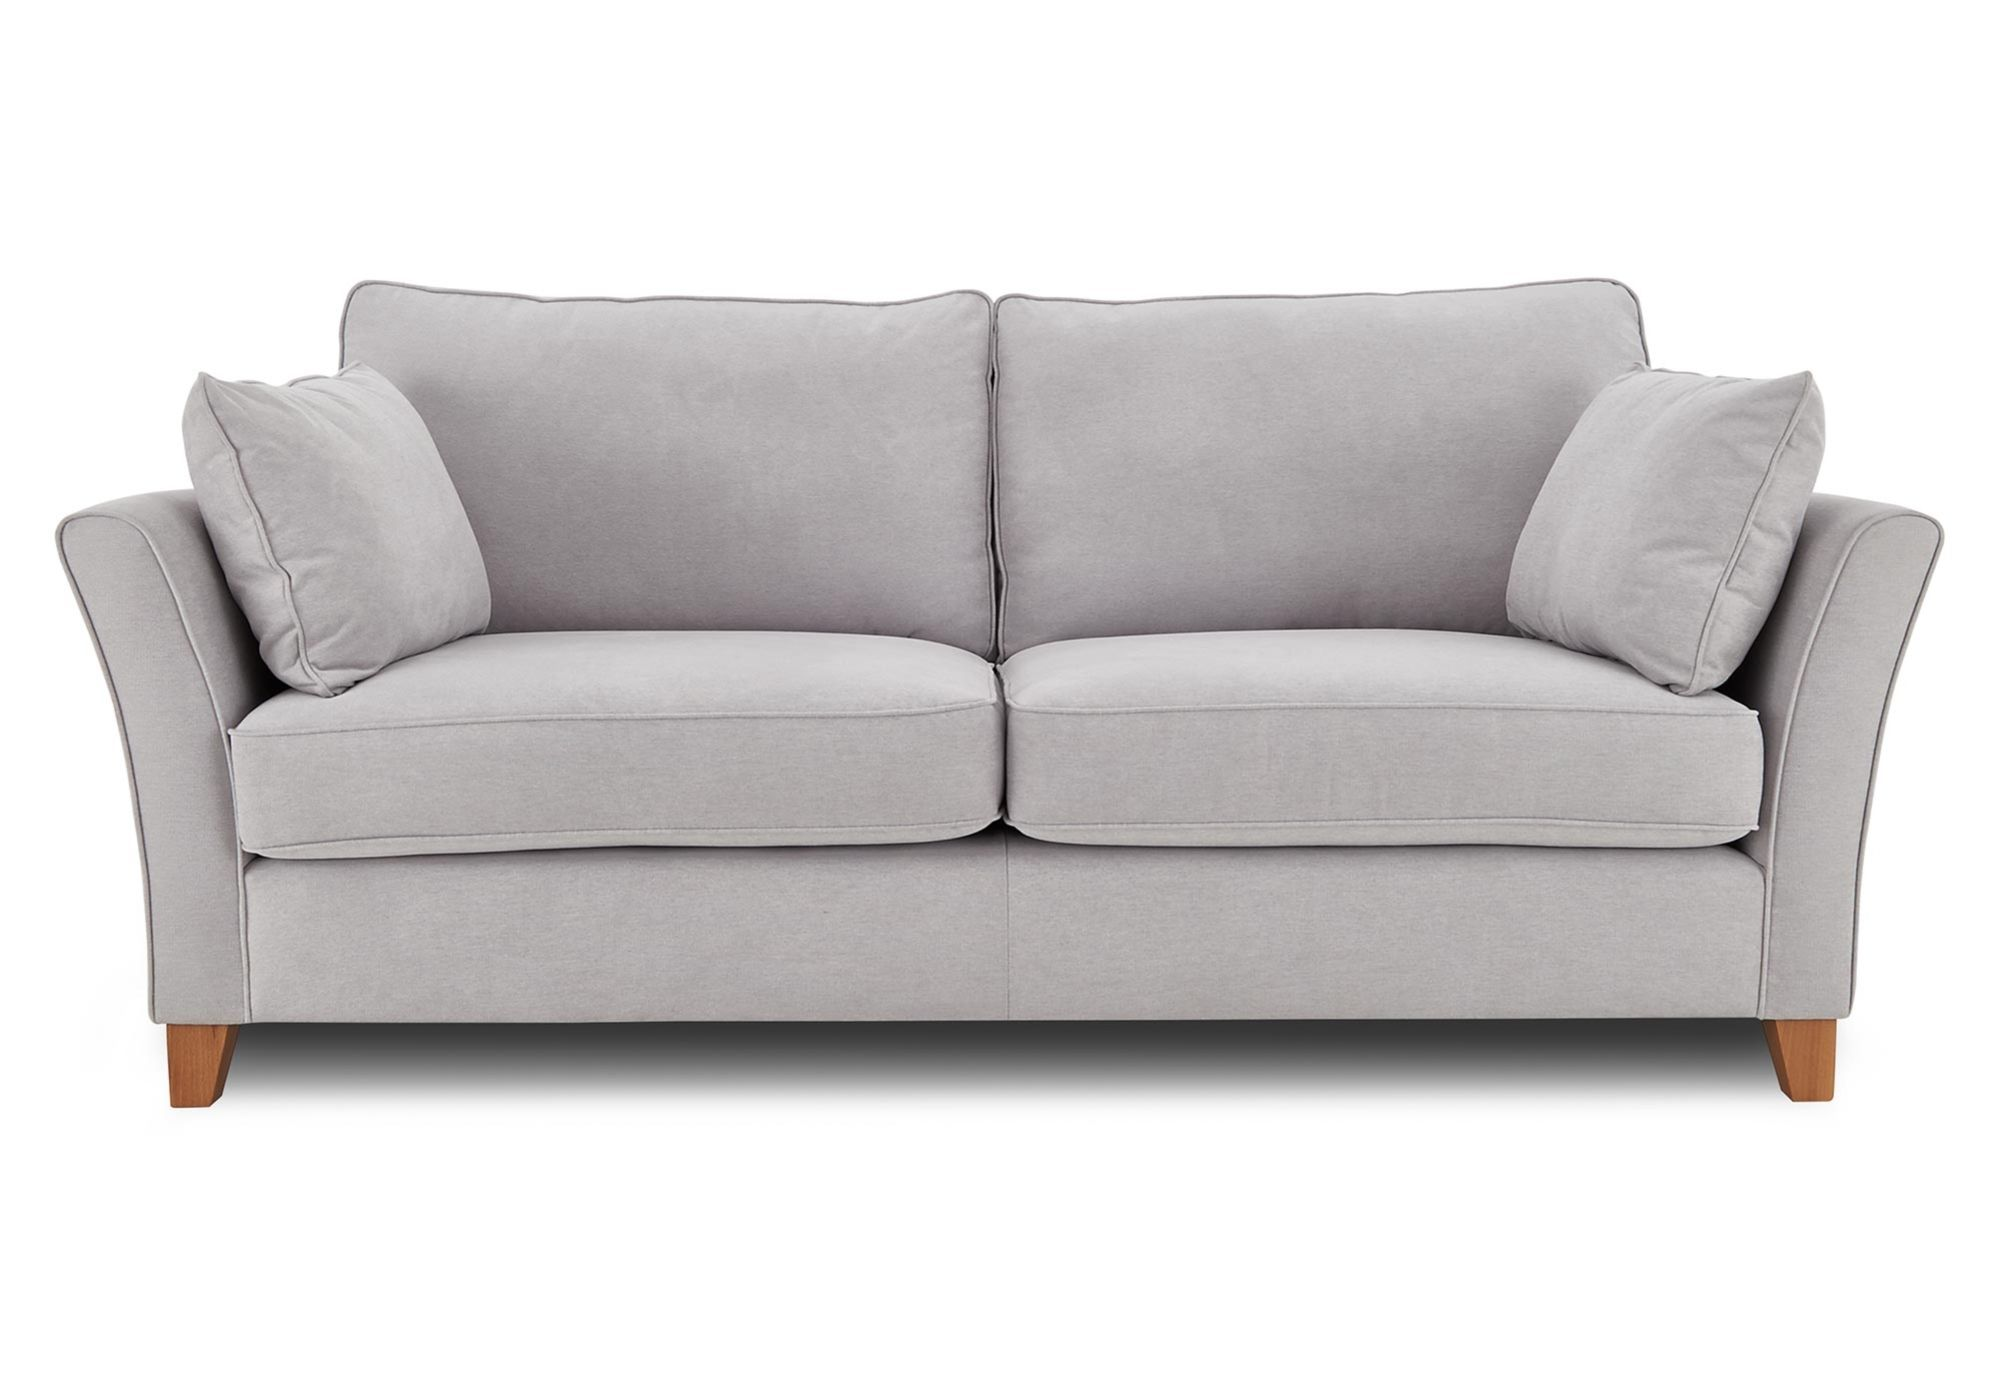 This lovely and very roomy family sofa has a classic yet